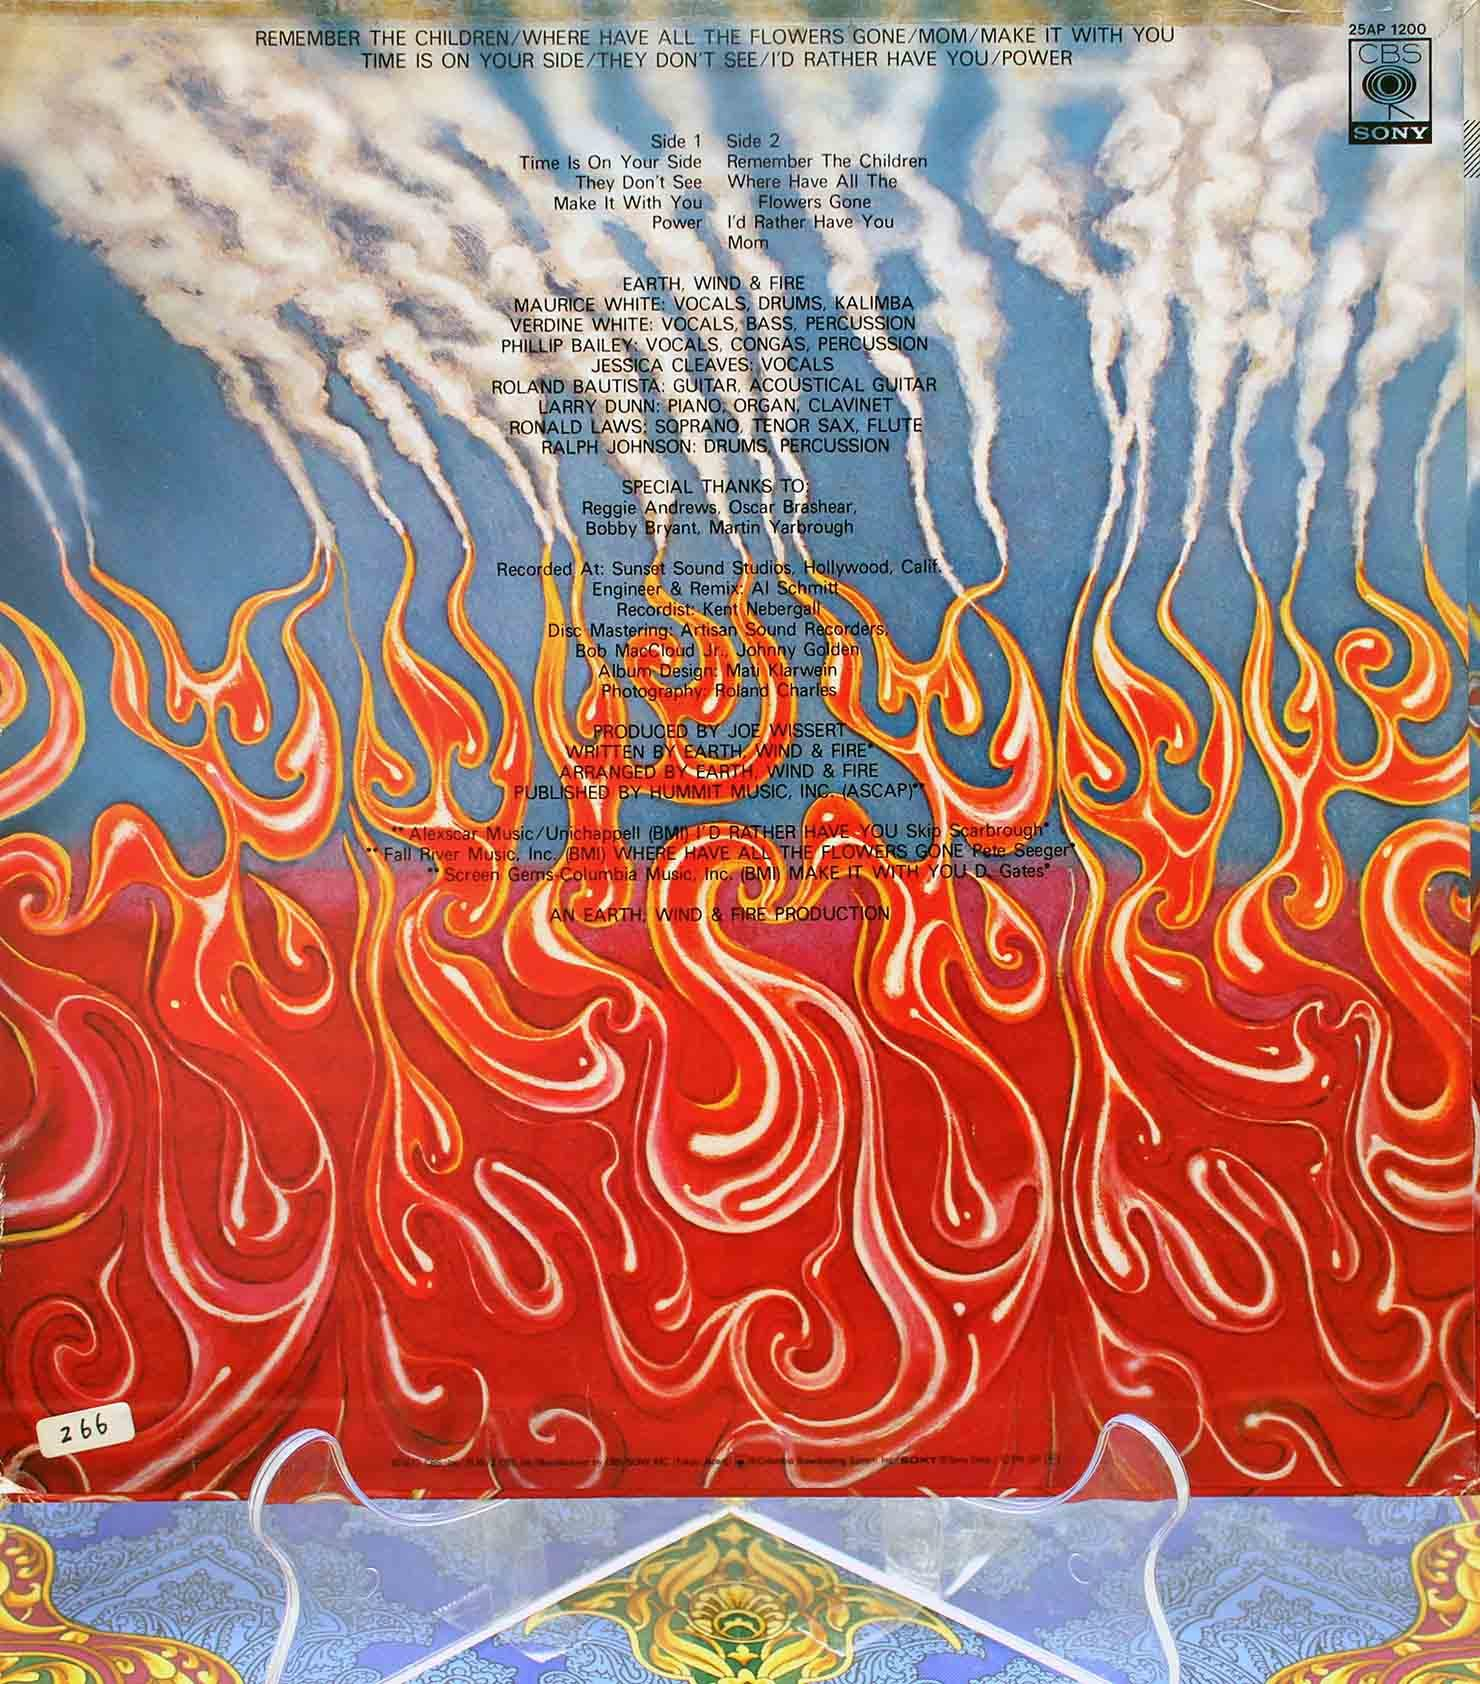 Earth, Wind Fire - Last Days And Time 02